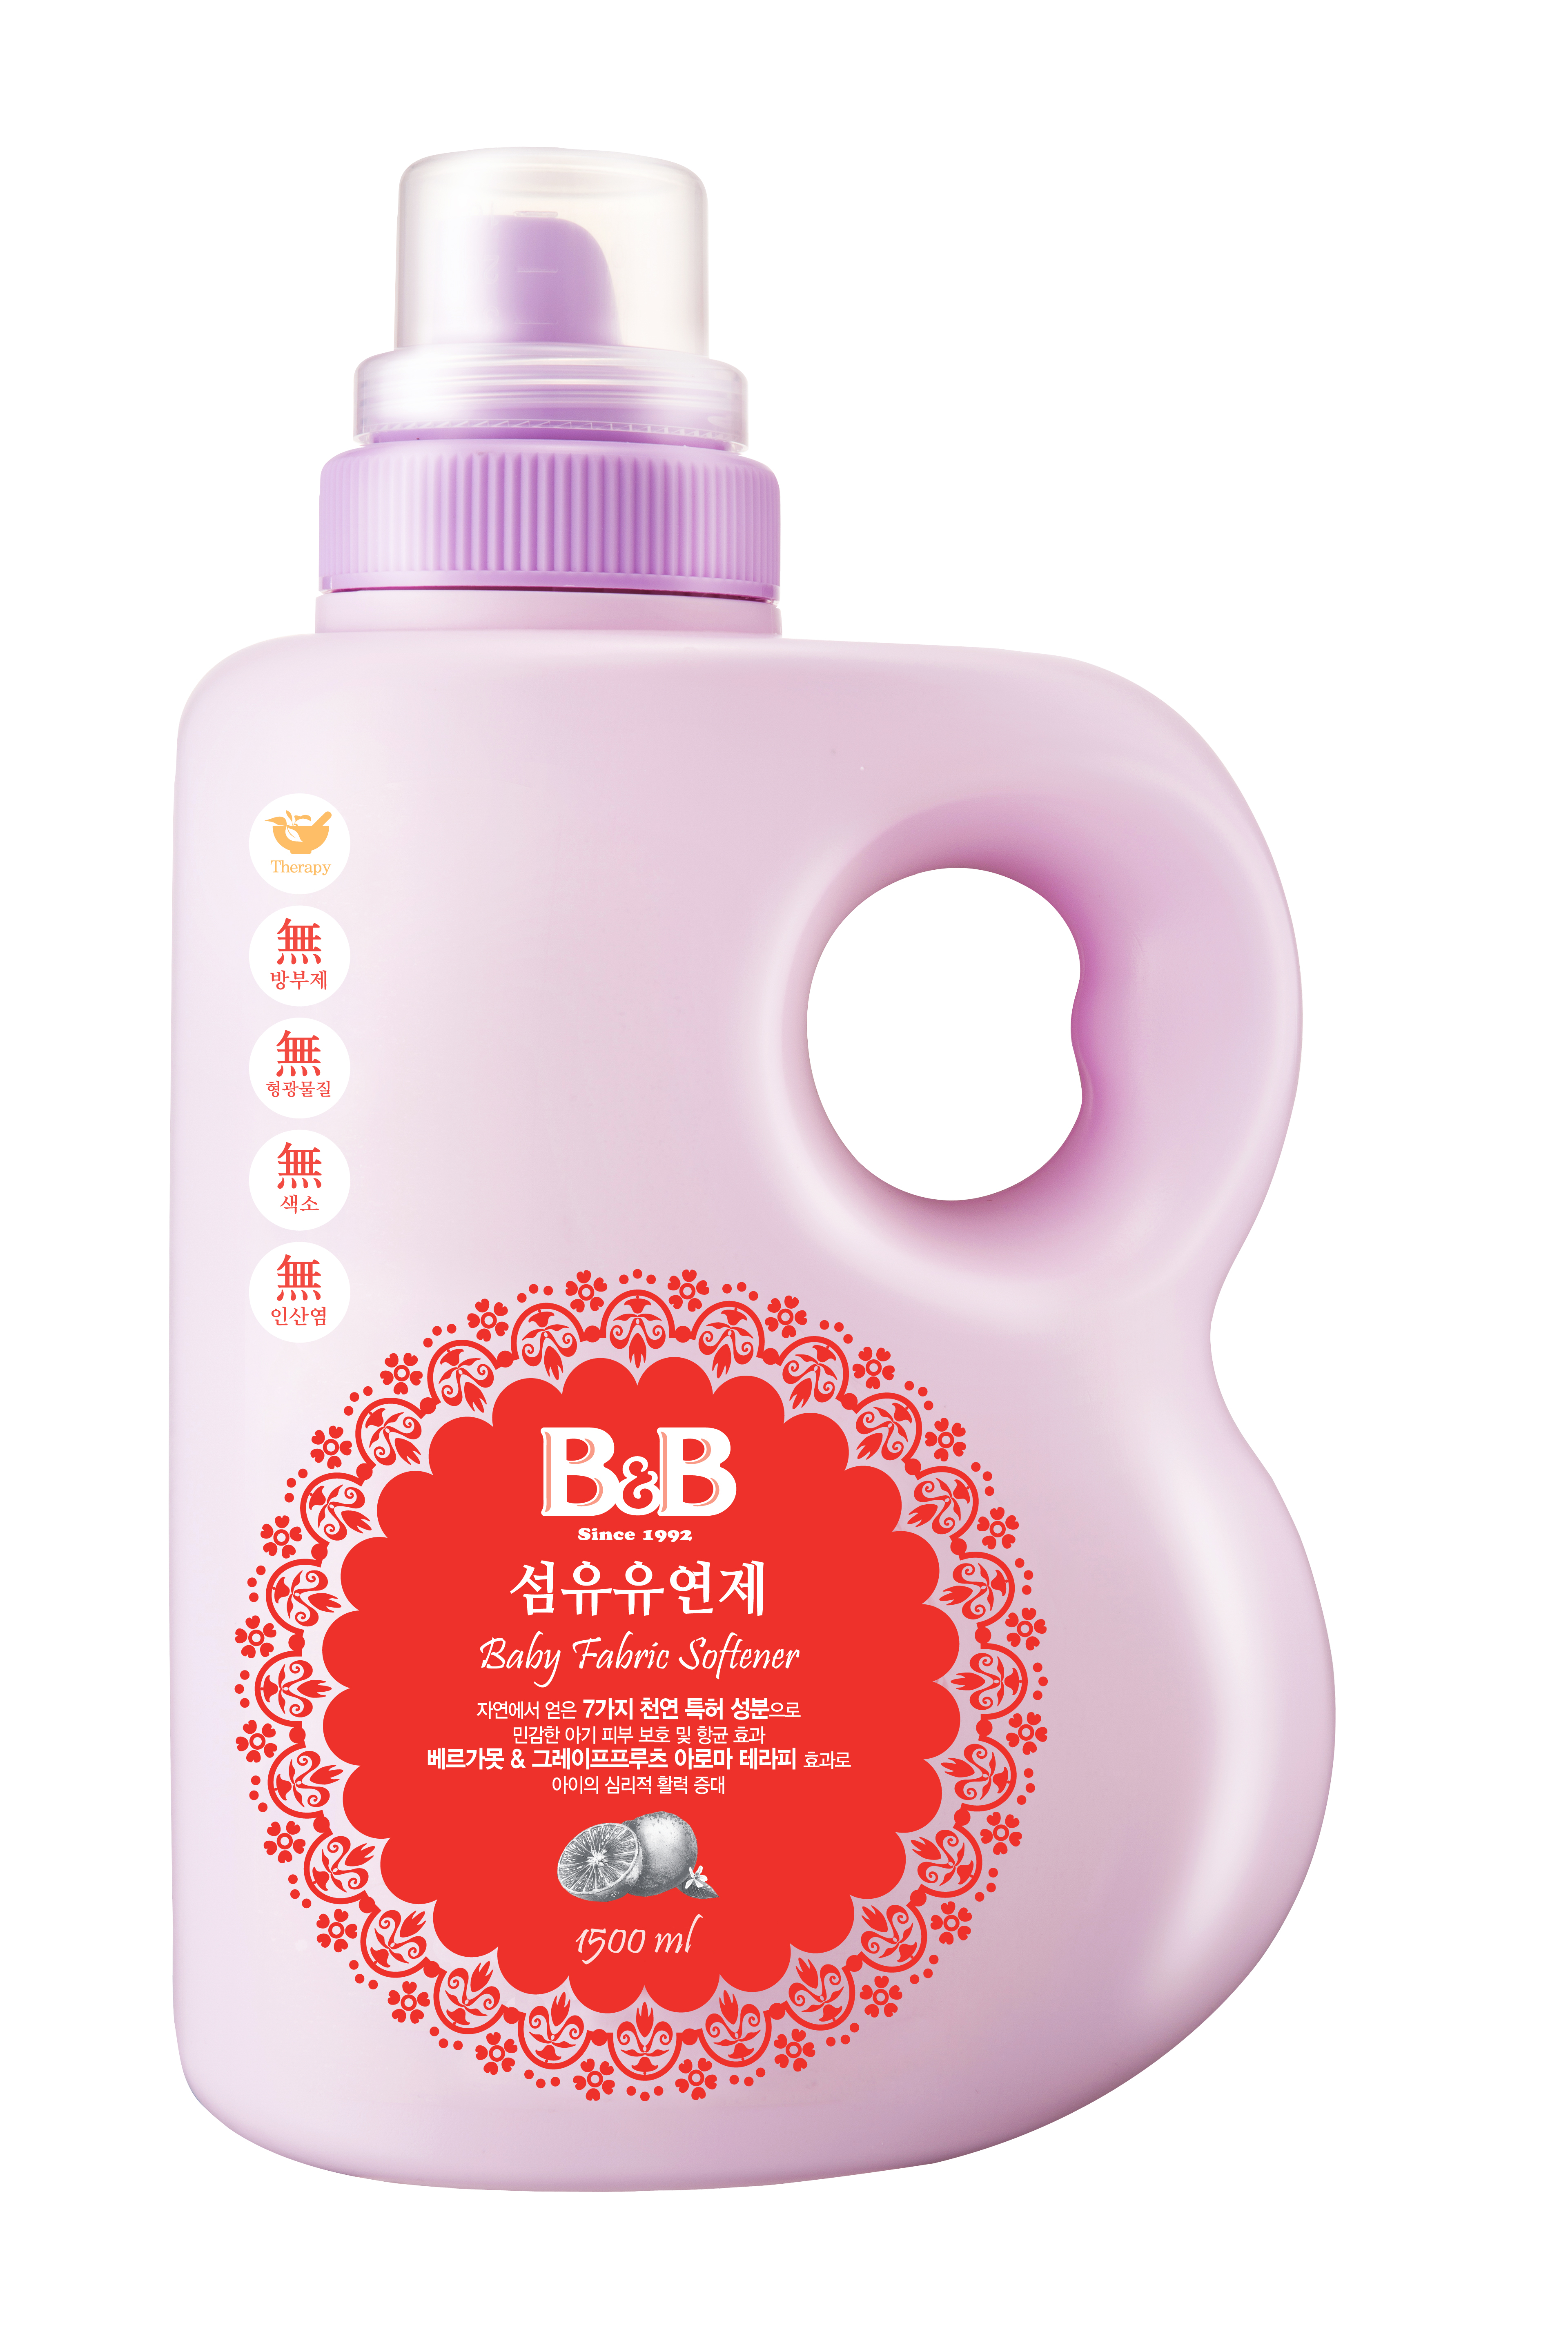 B&B Softener Bergamot